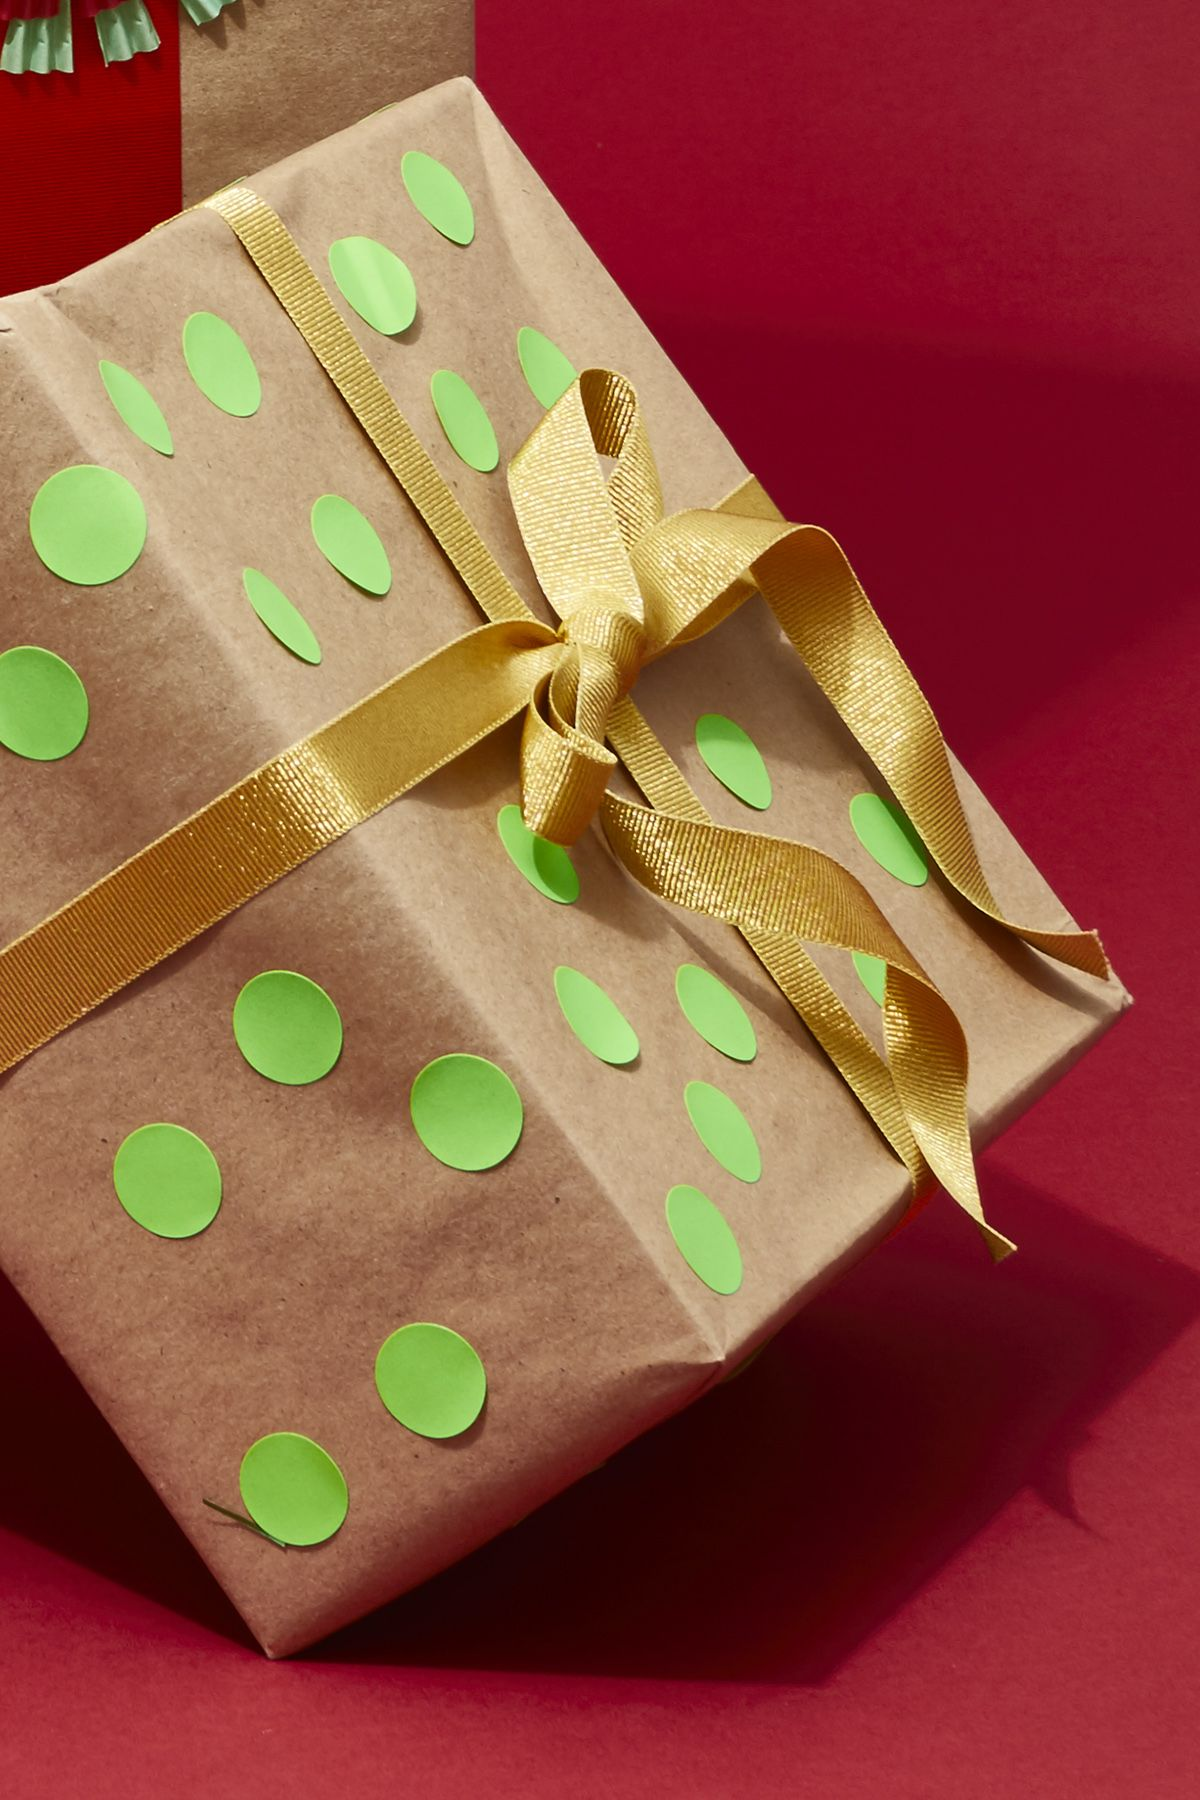 45 Christmas Gift Wrapping Ideas - Creative DIY Holiday Gift Wrap